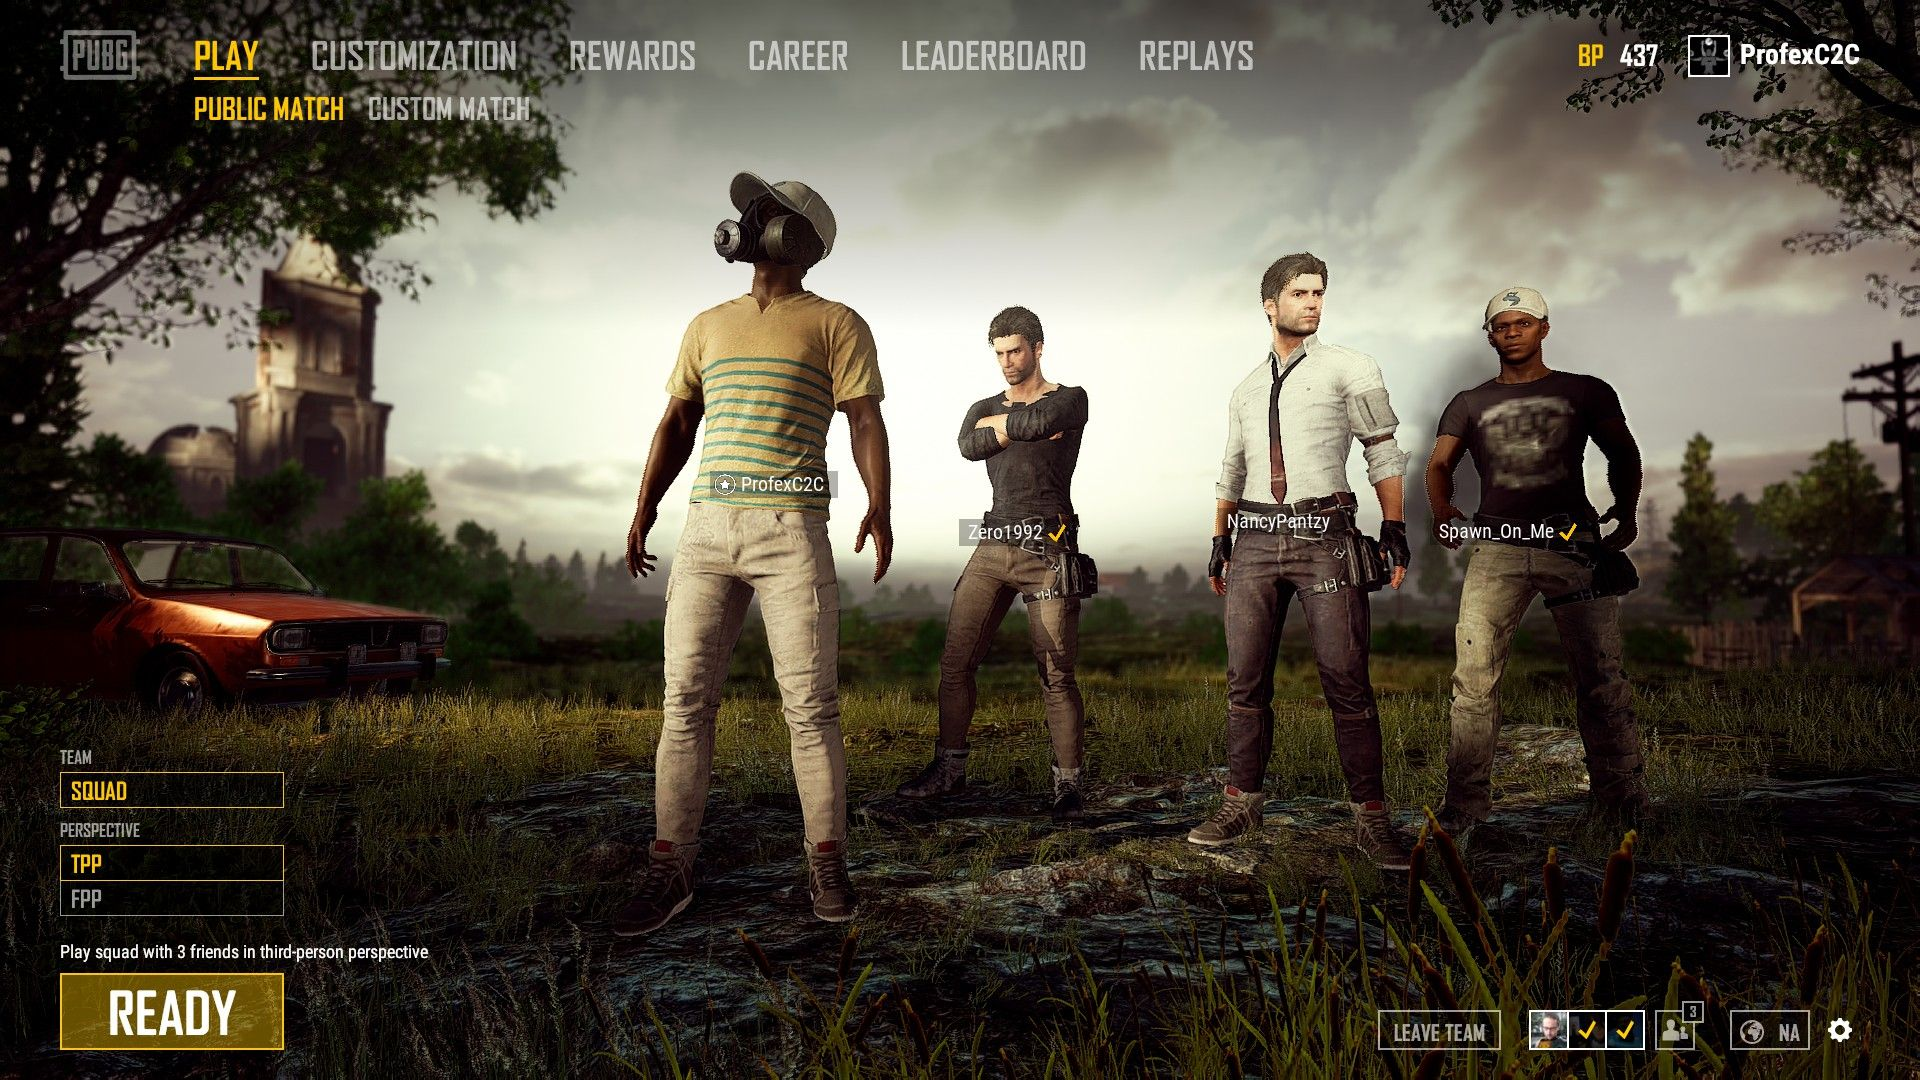 PUBG - Matchmaking System Will Consider Players' Ping